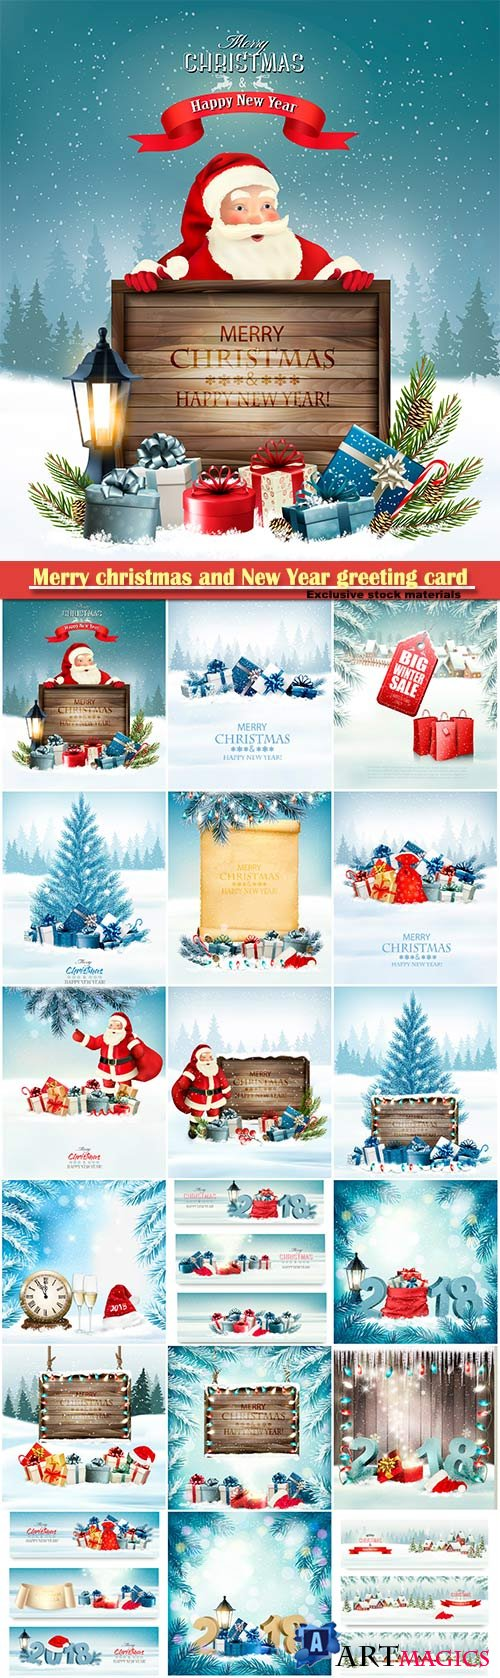 Merry christmas and New Year greeting card vector # 26